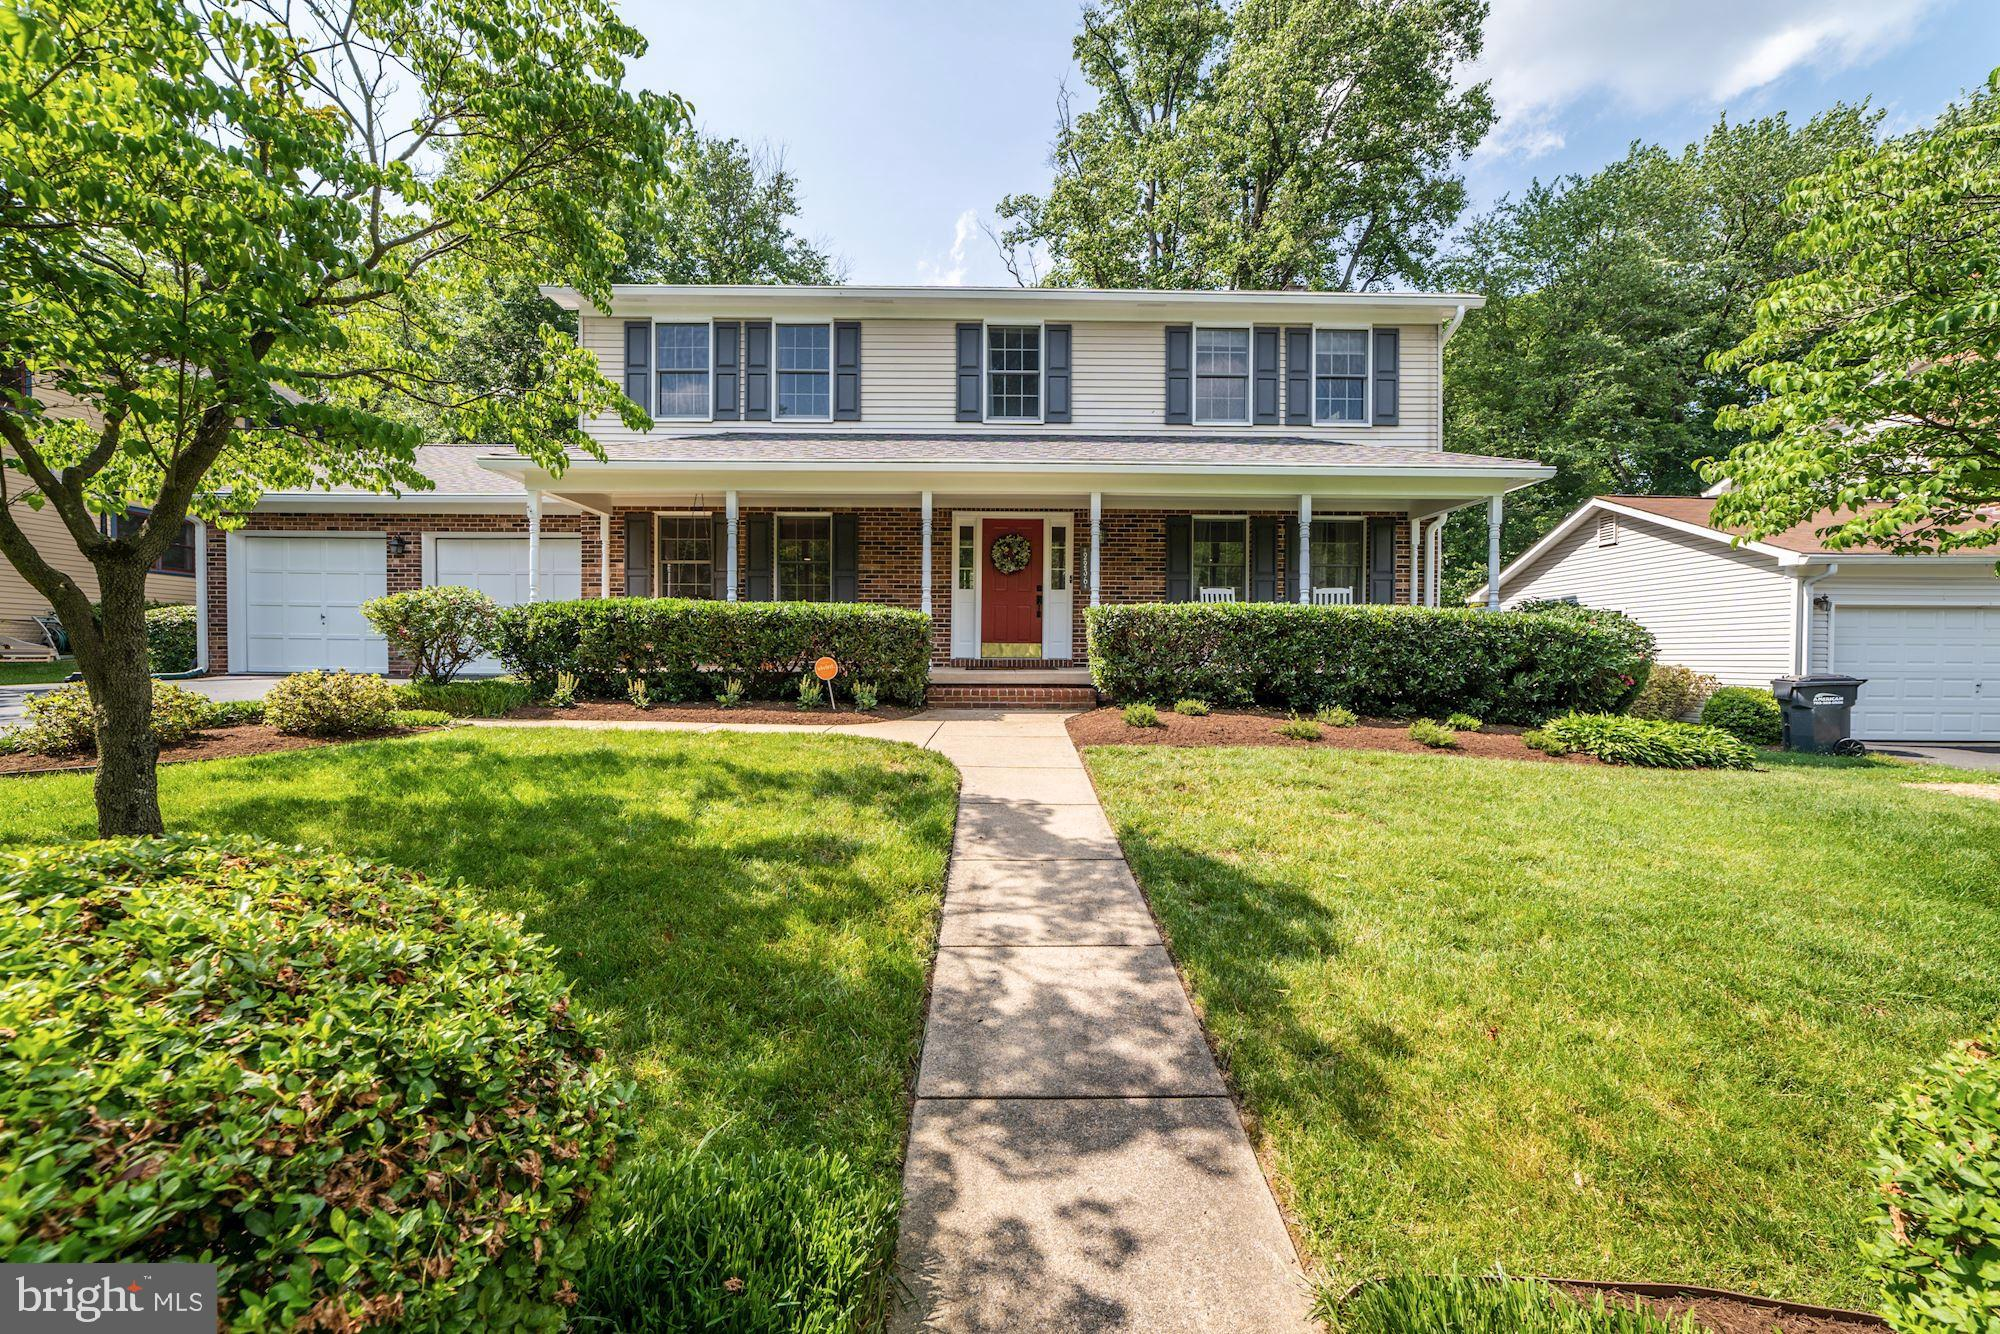 Offers due 4pm Monday. Rare opportunity for an immaculate, fully renovated 4 bedroom/3.5 bath colonial with an open floor plan; located on a quiet cul-de-sac in Falls Church with a 4-car garage! This fantastic home offers a formal living room and dining room, a gourmet kitchen with granite counters, stainless steel appliances and breakfast nook that opens to a large family room. The family room features a fireplace, built-ins, and French doors that lead to a lovely screened porch and deck overlooking a fully fenced and professionally landscaped flat backyard. Upstairs, find a master suitewith a modern fully renovated bath and ample closet space. Down the hall, three more large bedrooms share an over sized hall bath as well as a conveniently located laundry closet. The fully finished basement features a guest room, full bath, game room and rec room, fireplace, an ample storage room, and rear walk-up. One mile to West Falls Church Metro and easy access to I-66, 495 and Dulles Toll Road!McLean Schools!